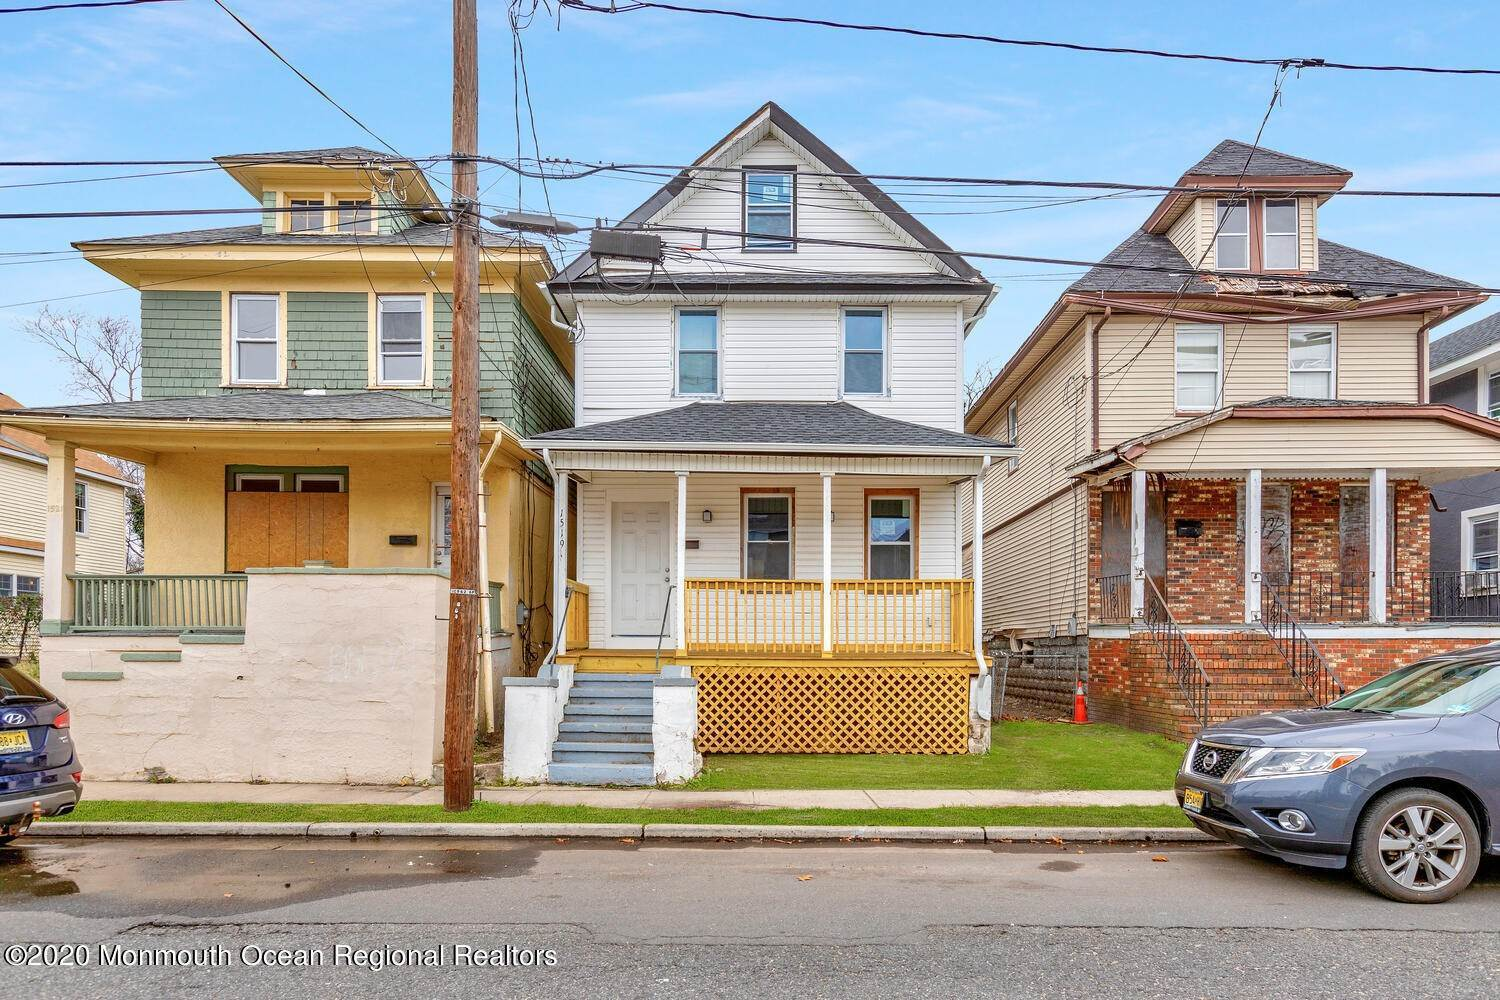 Property for Sale at 1519 Summerfield Avenue Asbury Park, New Jersey 07712 United States